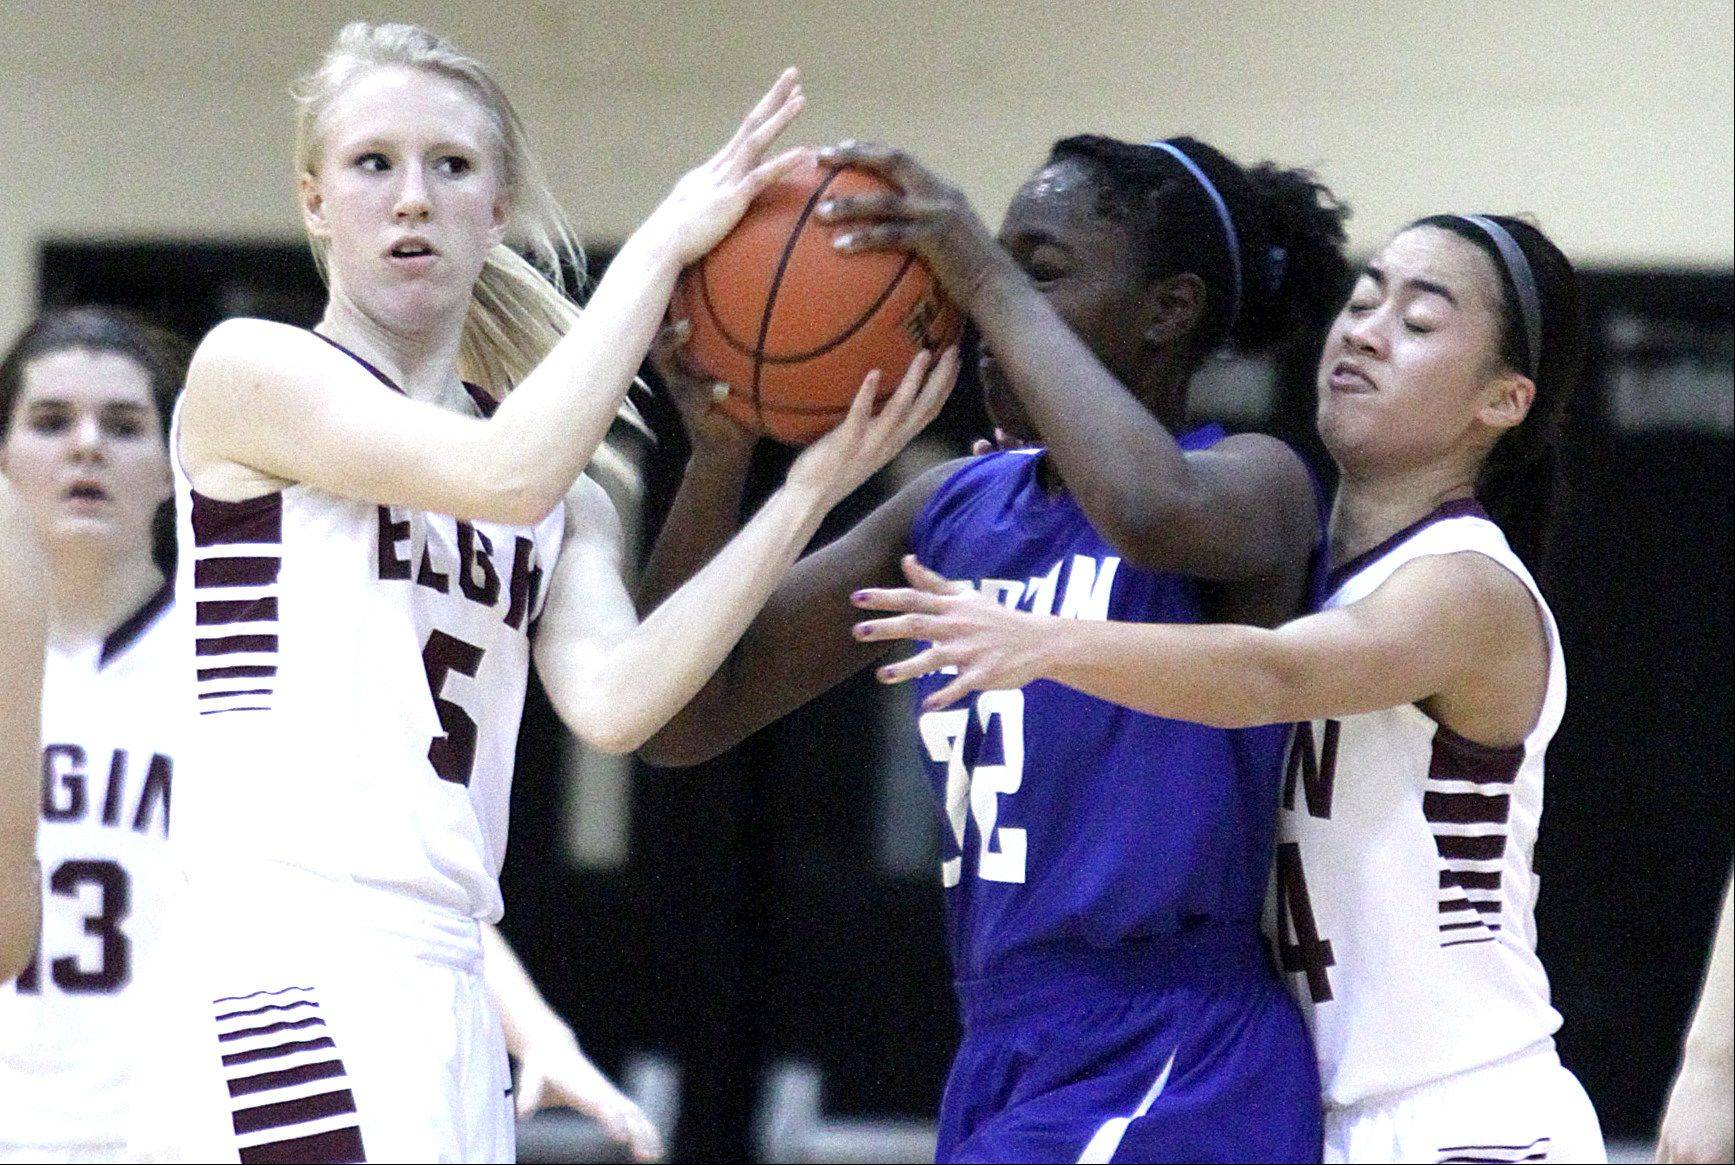 Elgin's Melanie Berg, left, and Kristin Tayag, right, tussle with Larkin's Elizabeth Oladokun, center, for control of the ball.